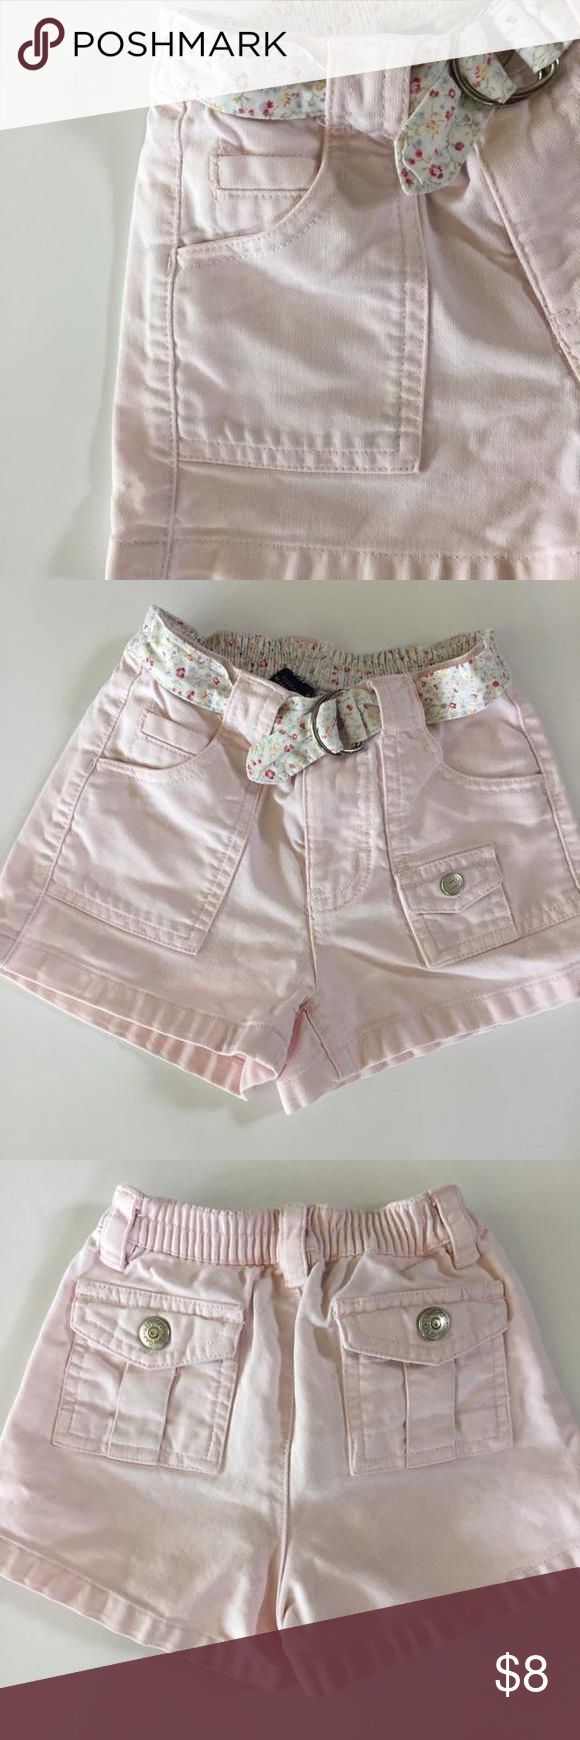 Baby Gap Pink Shorts Adorable light pink shorts with snap pockets and built in belt with dainty floral pattern.  It has an elasticized waistband on the back. GAP Bottoms Shorts